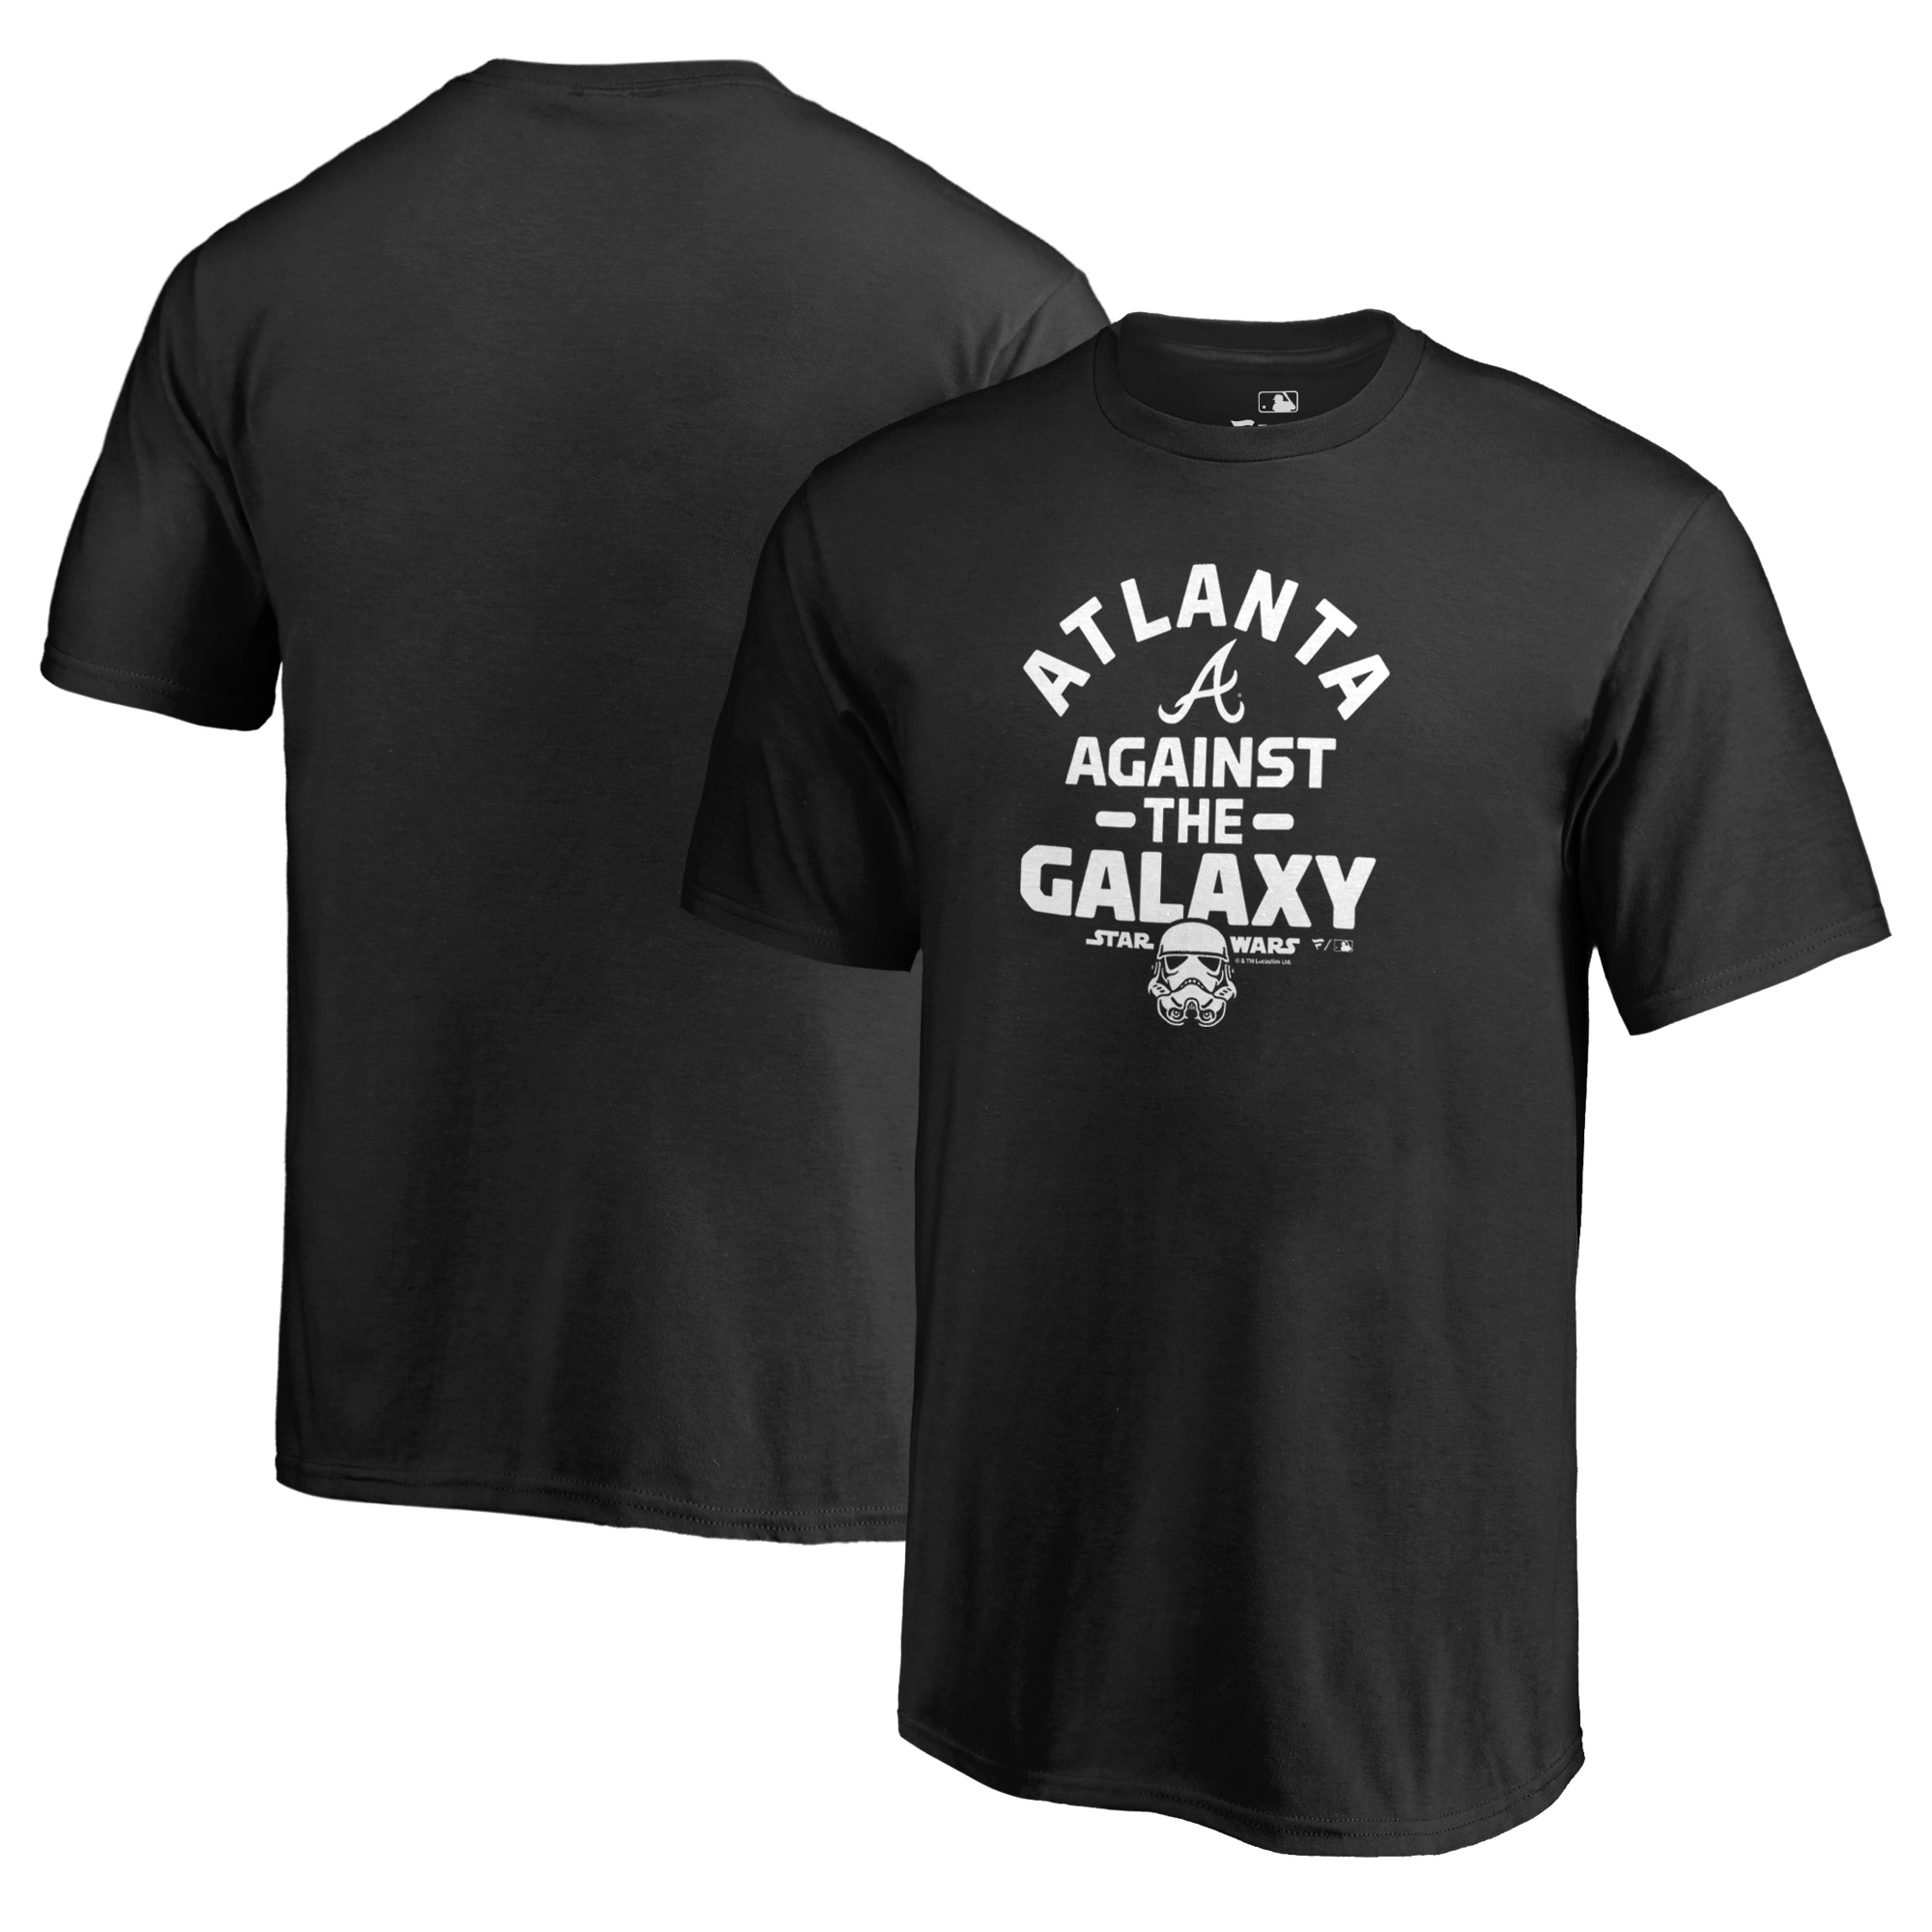 Atlanta Braves Fanatics Branded Youth MLB Star Wars Against The Galaxy T-Shirt - Black